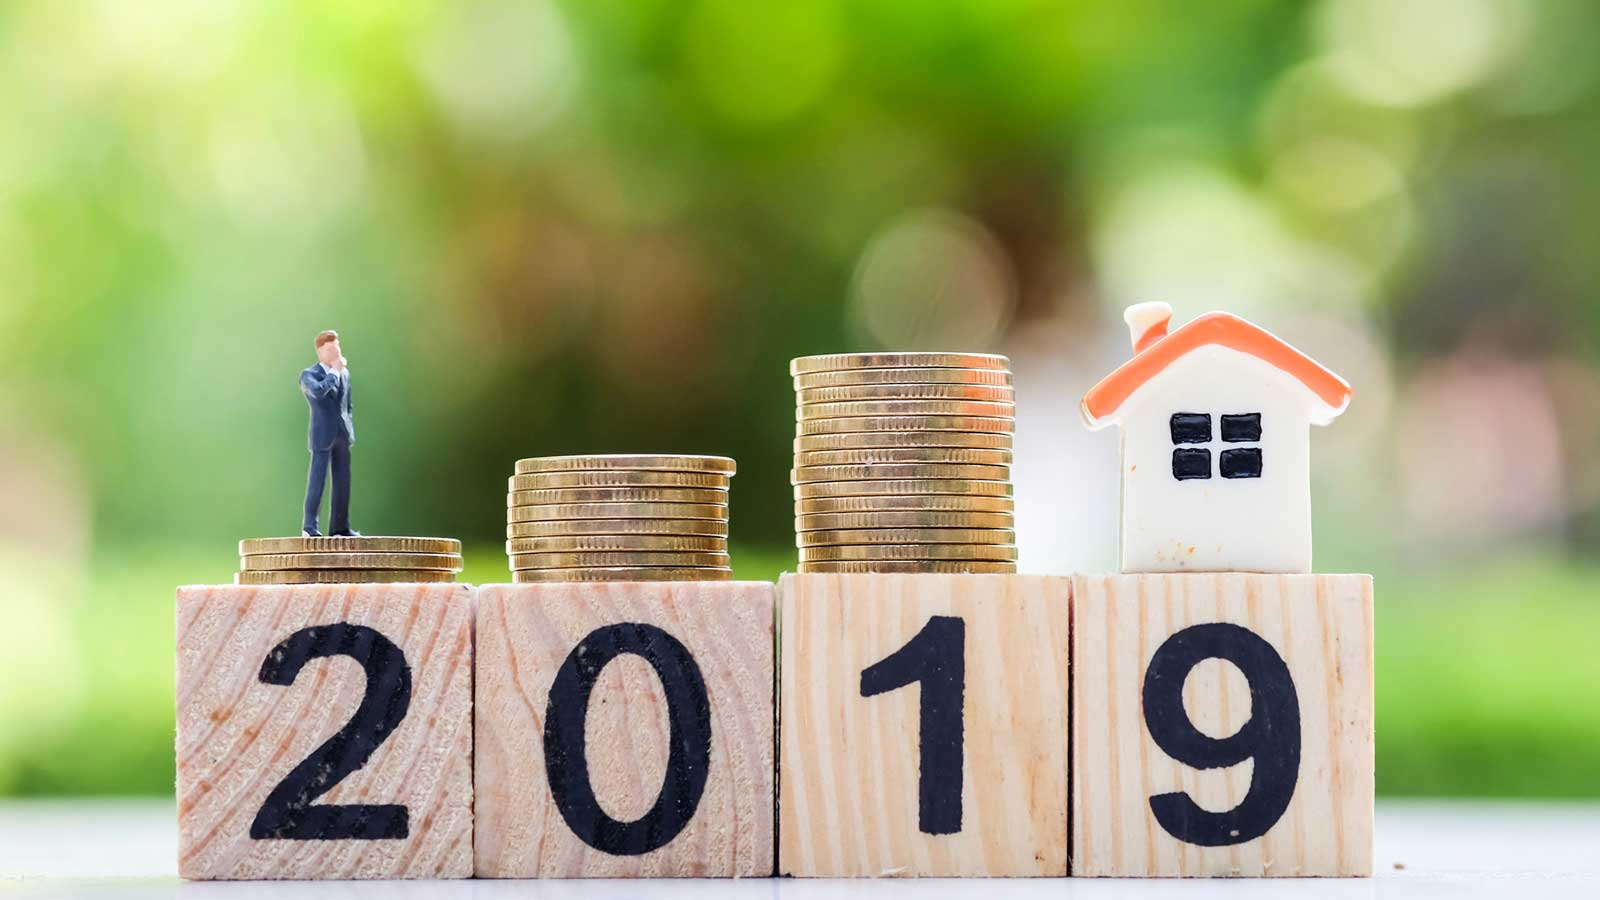 Plan and meet your financial goals for 2019